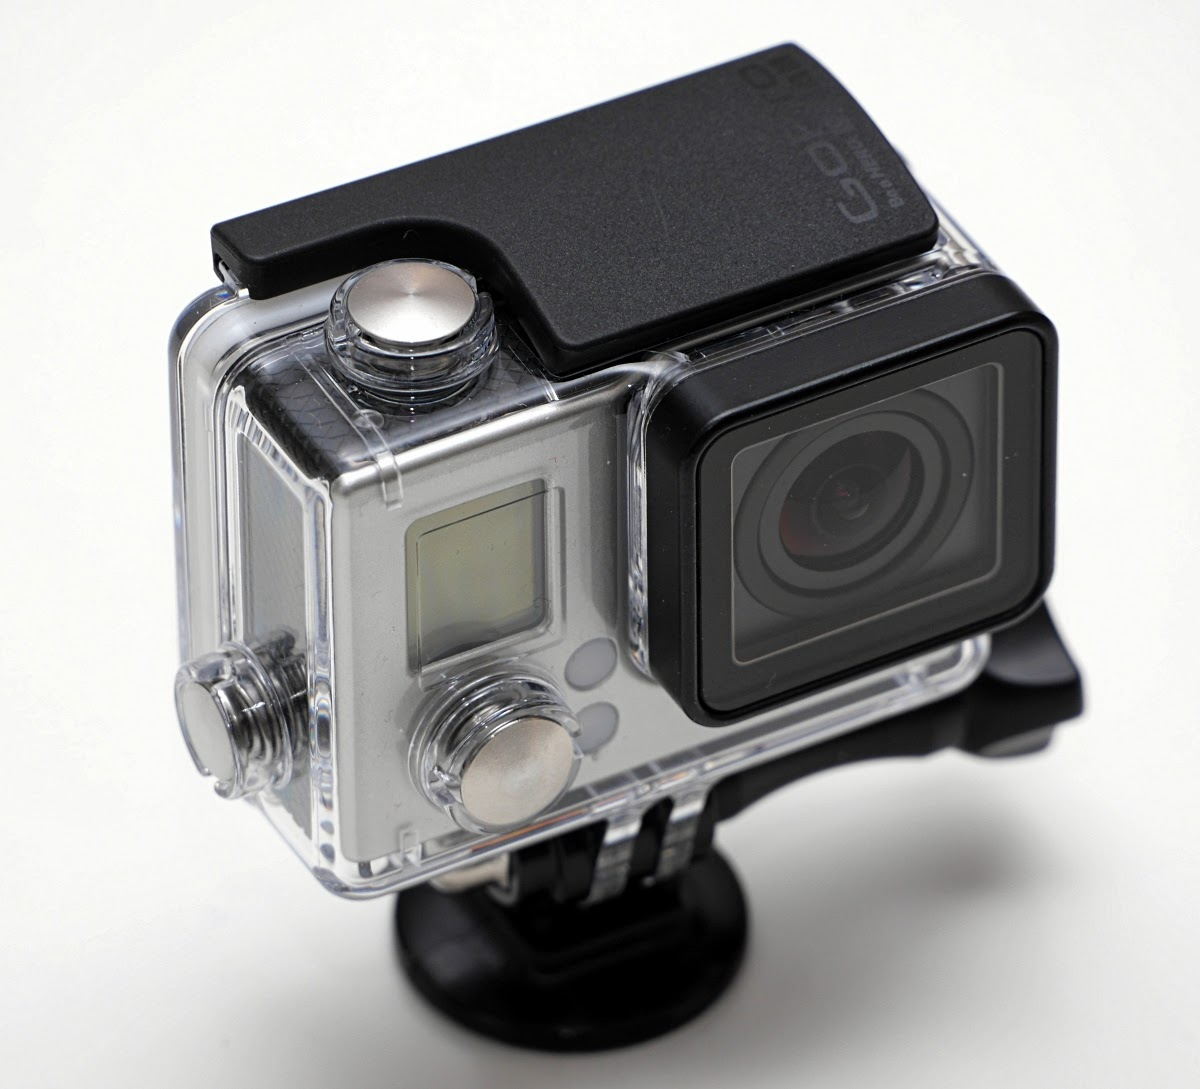 micro 4 3rds photography gopro hero 3 black review part 1. Black Bedroom Furniture Sets. Home Design Ideas